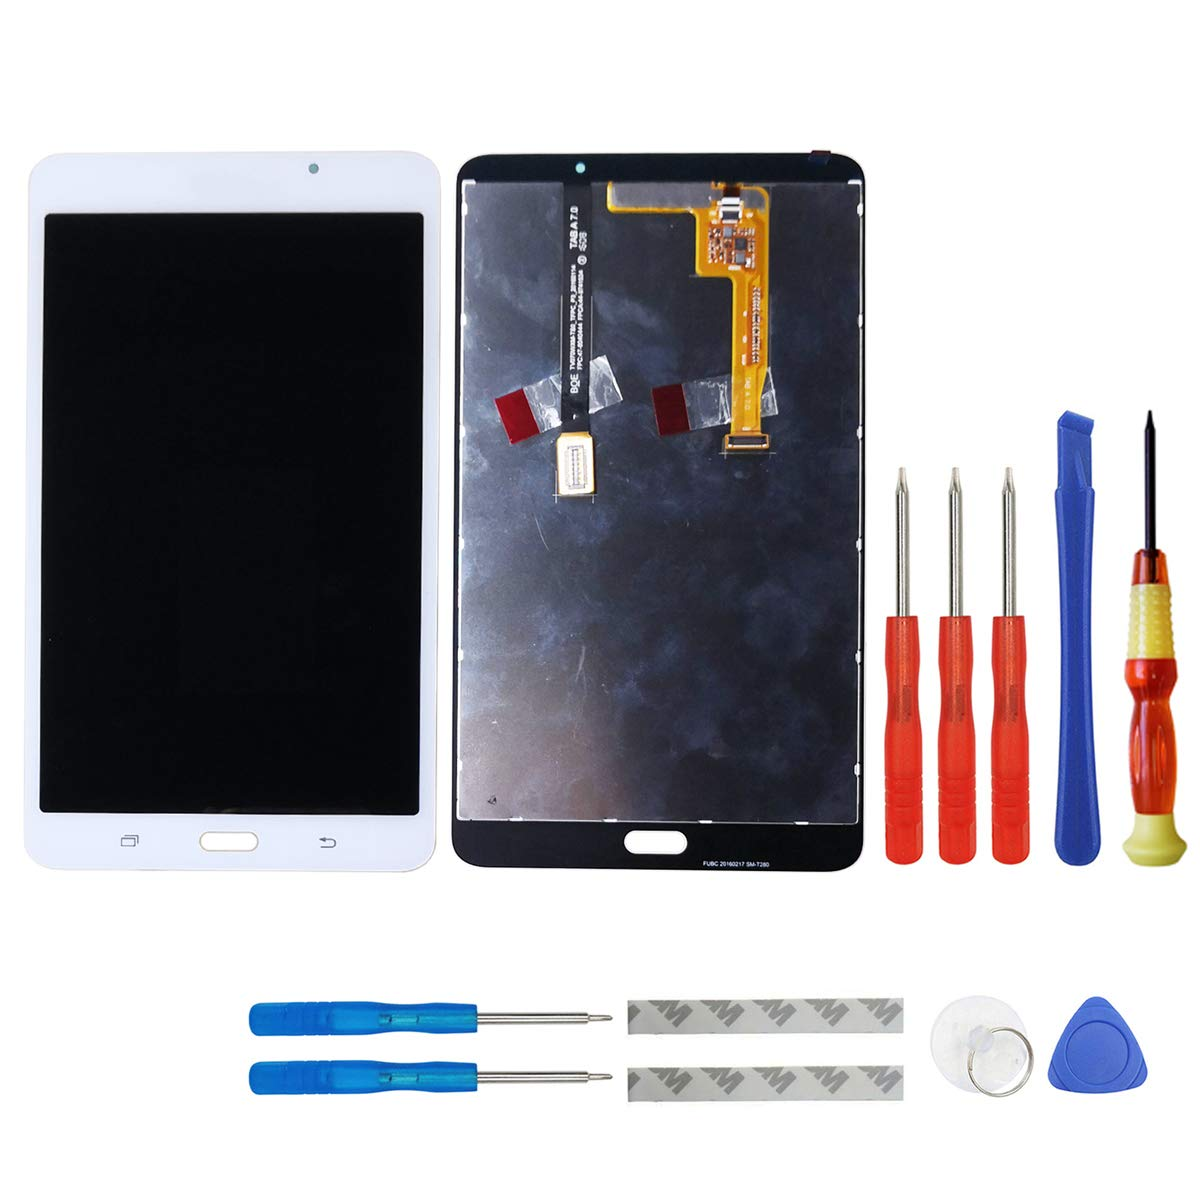 swark LCD Compatible with Samsung Galaxy Tab A 7.0 WiFi Tablet SM-T280 LCD Display Digitizer Touch Screen Assembly (White) + Tools(Not for 3G Version & T285 & No Earpiece Hole)